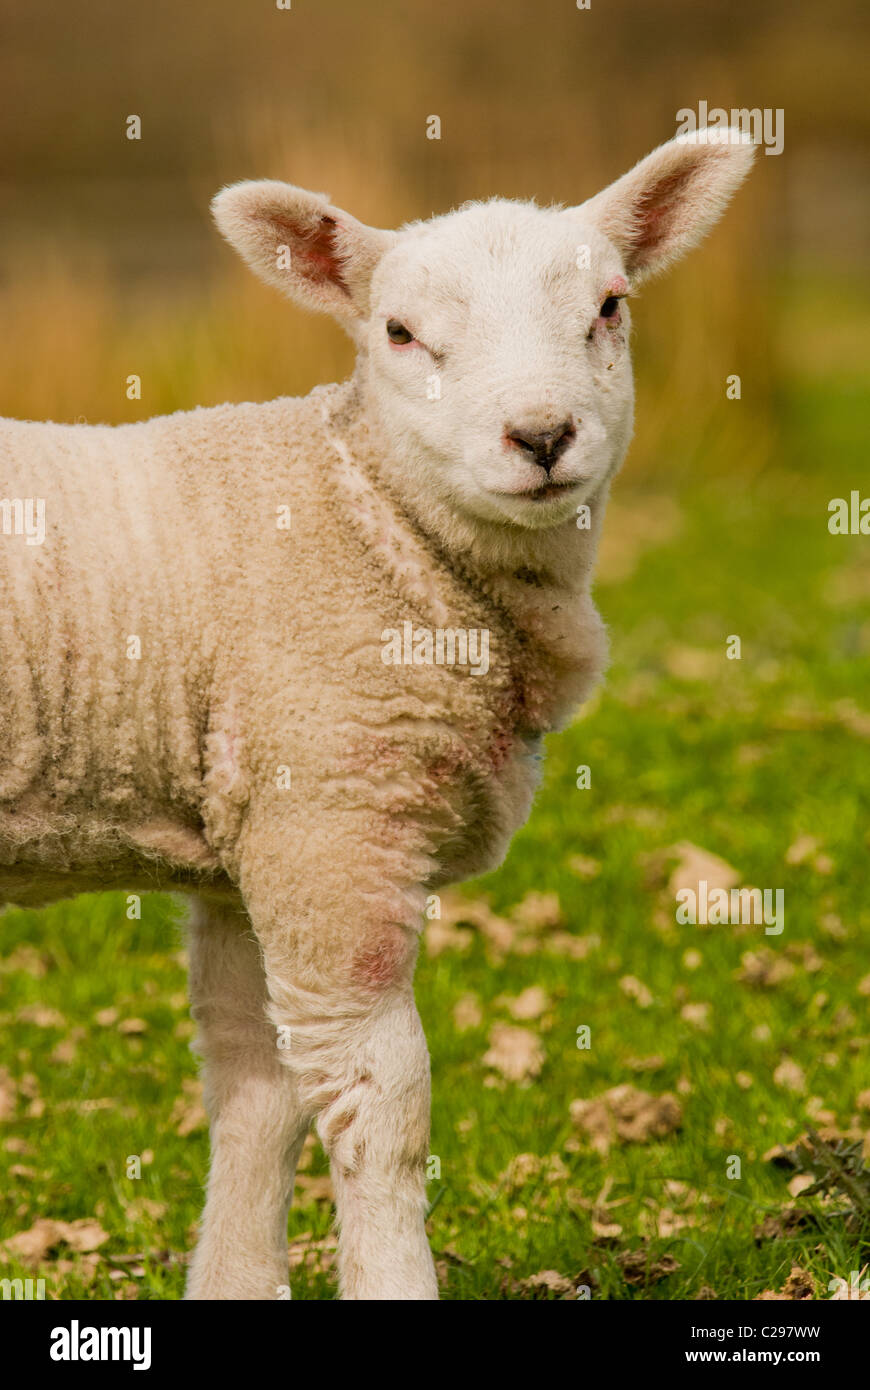 A portrait of a lamb in a field - Stock Image